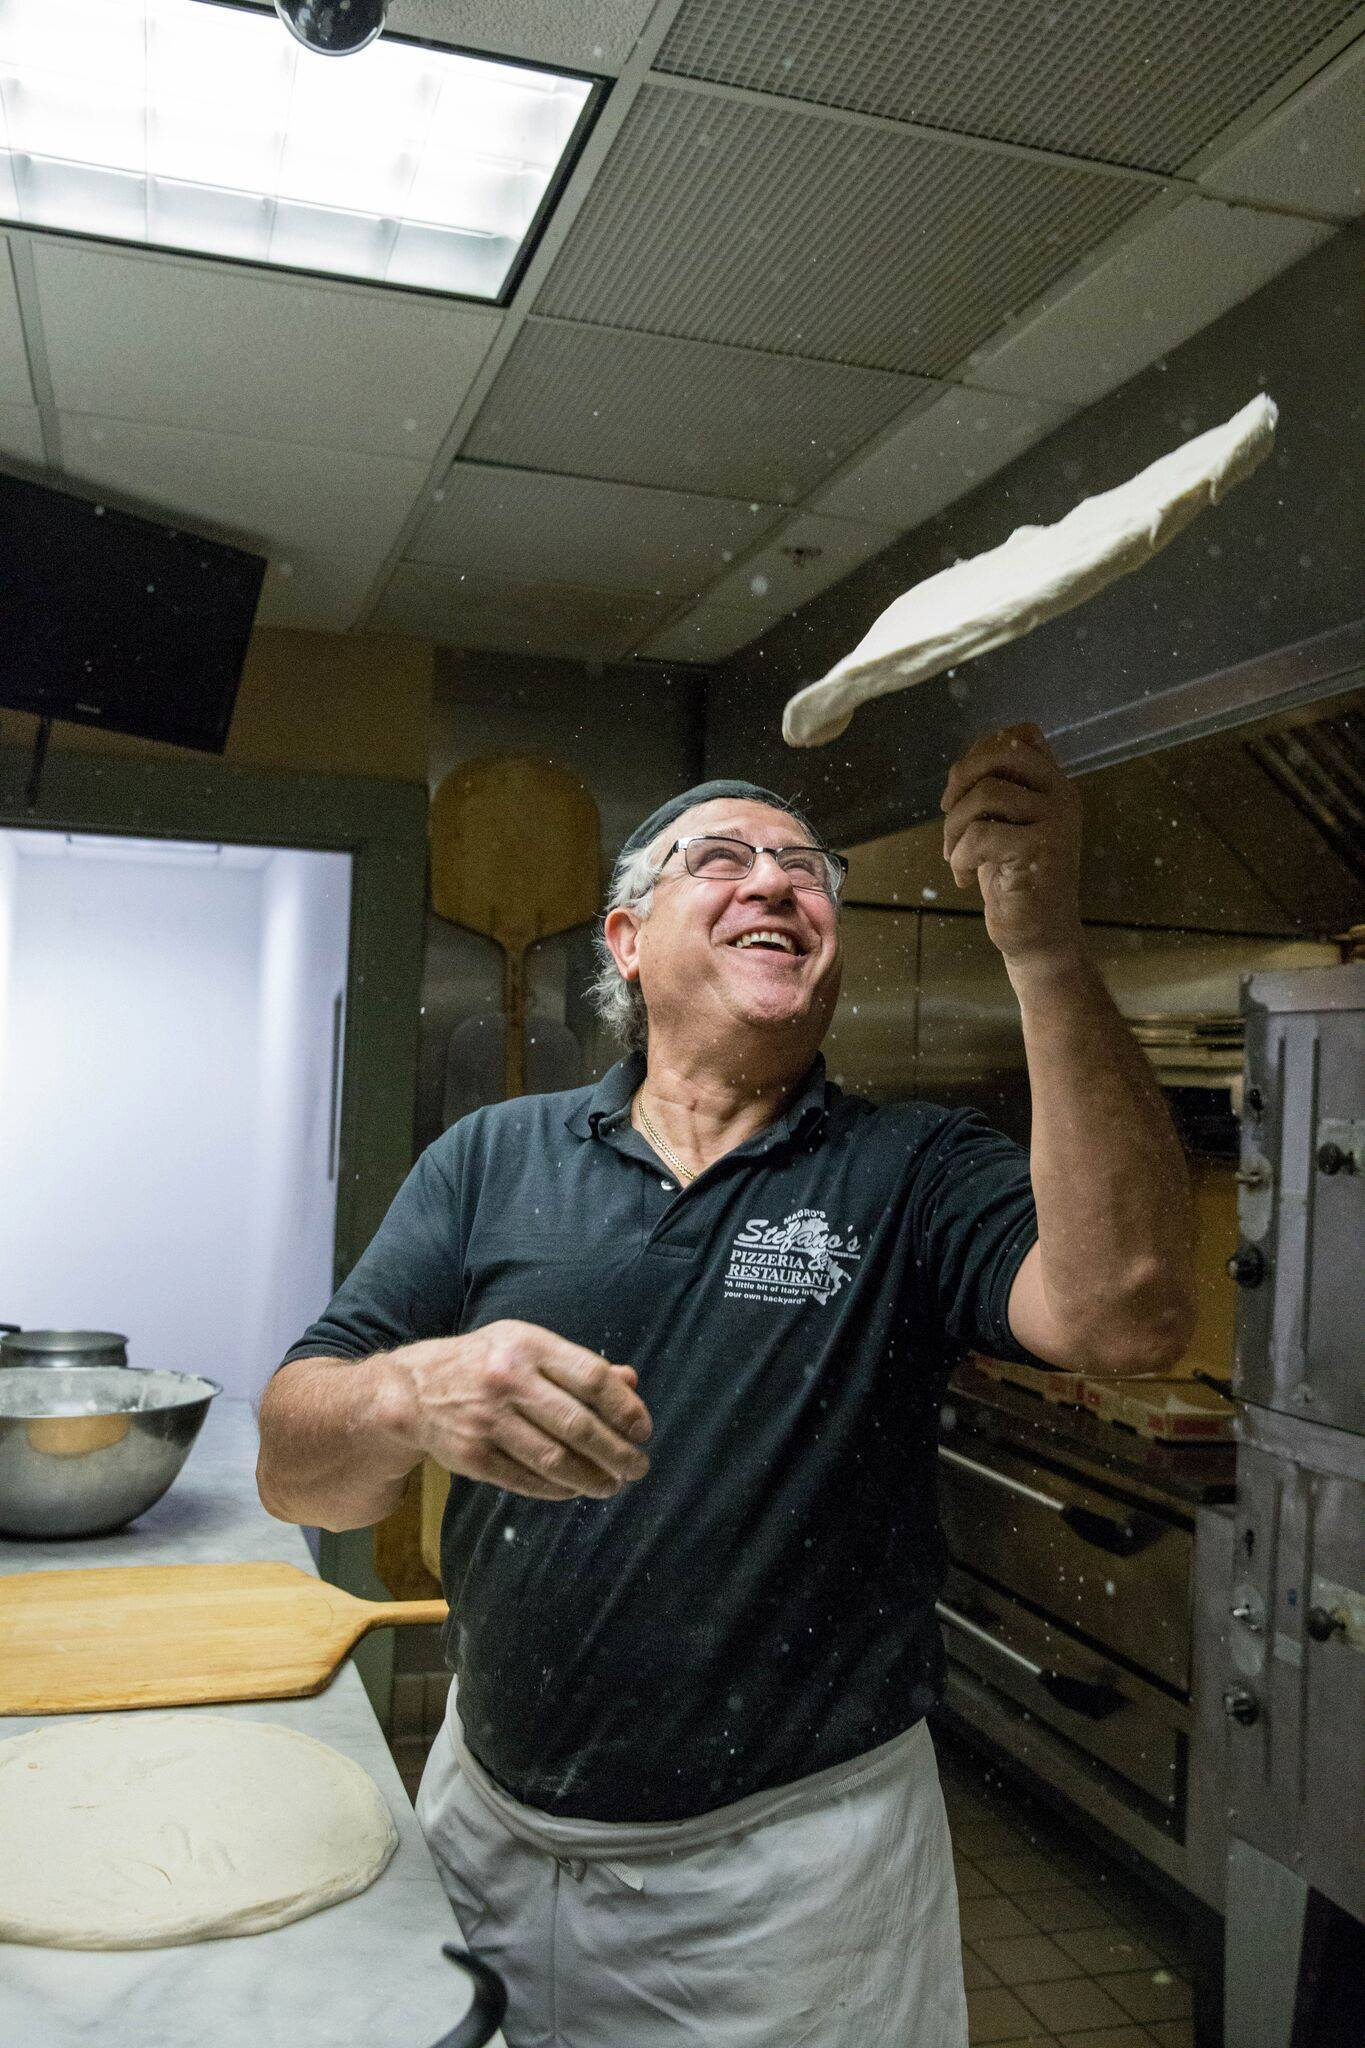 Owner Tossing Dough